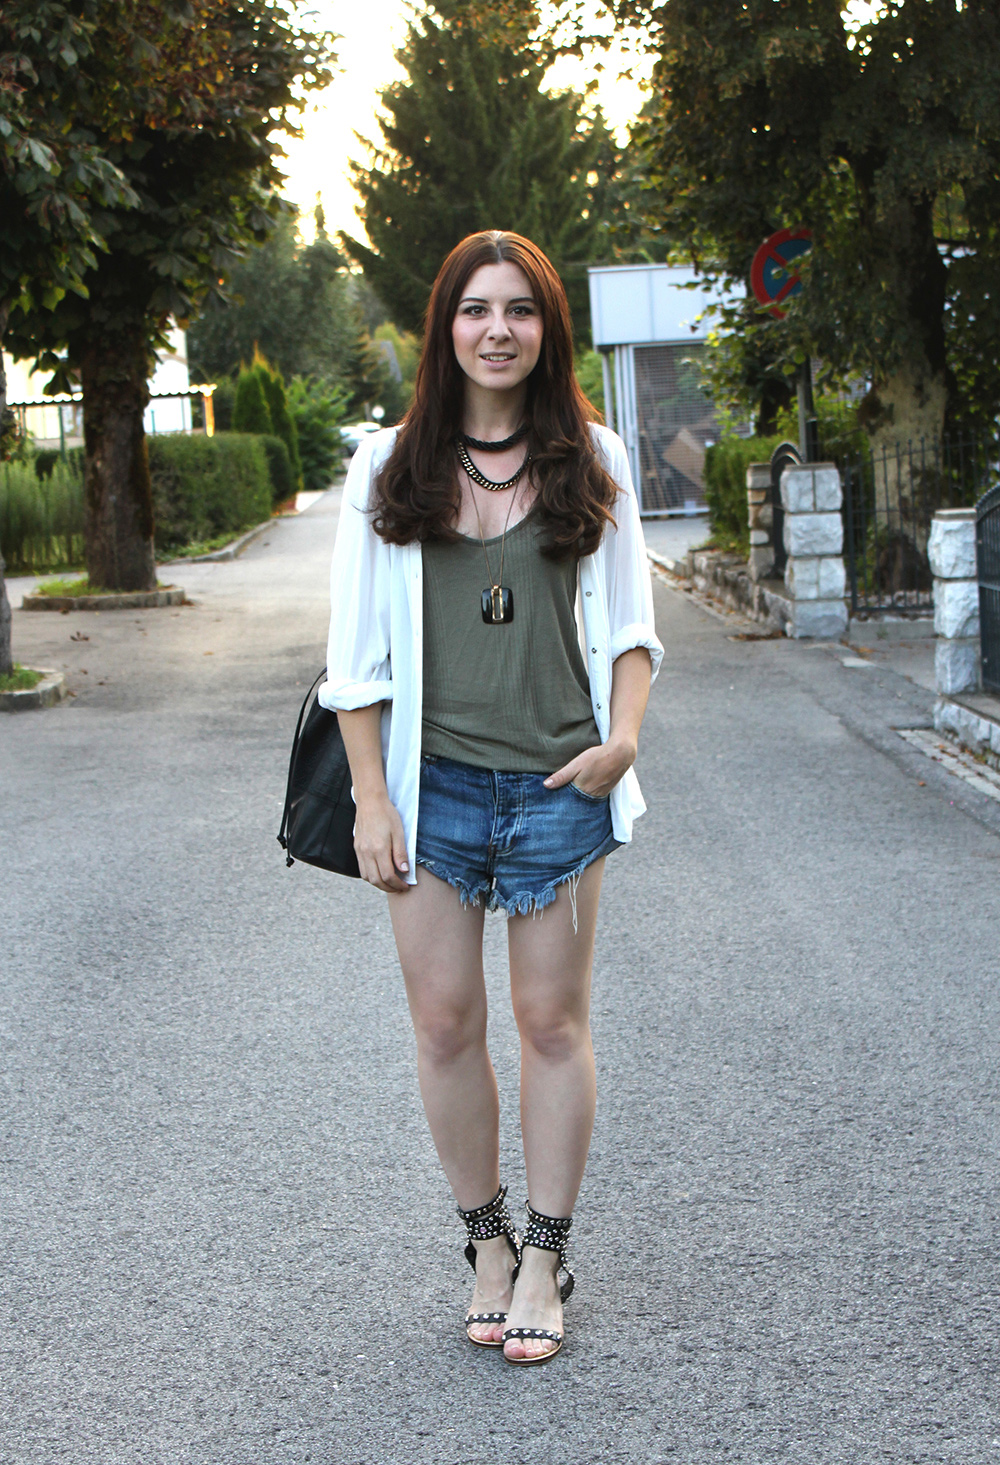 who is mocca, fashionblog österreich, fashionblog tirol, one teaspoon denim shorts, zara top sale khaki, bluse H&M weiss, isabel marant lookalike sandalen, ketten, layered necklaces, great lengths extensions, beuteltasche pieces, bucket bag sarenza